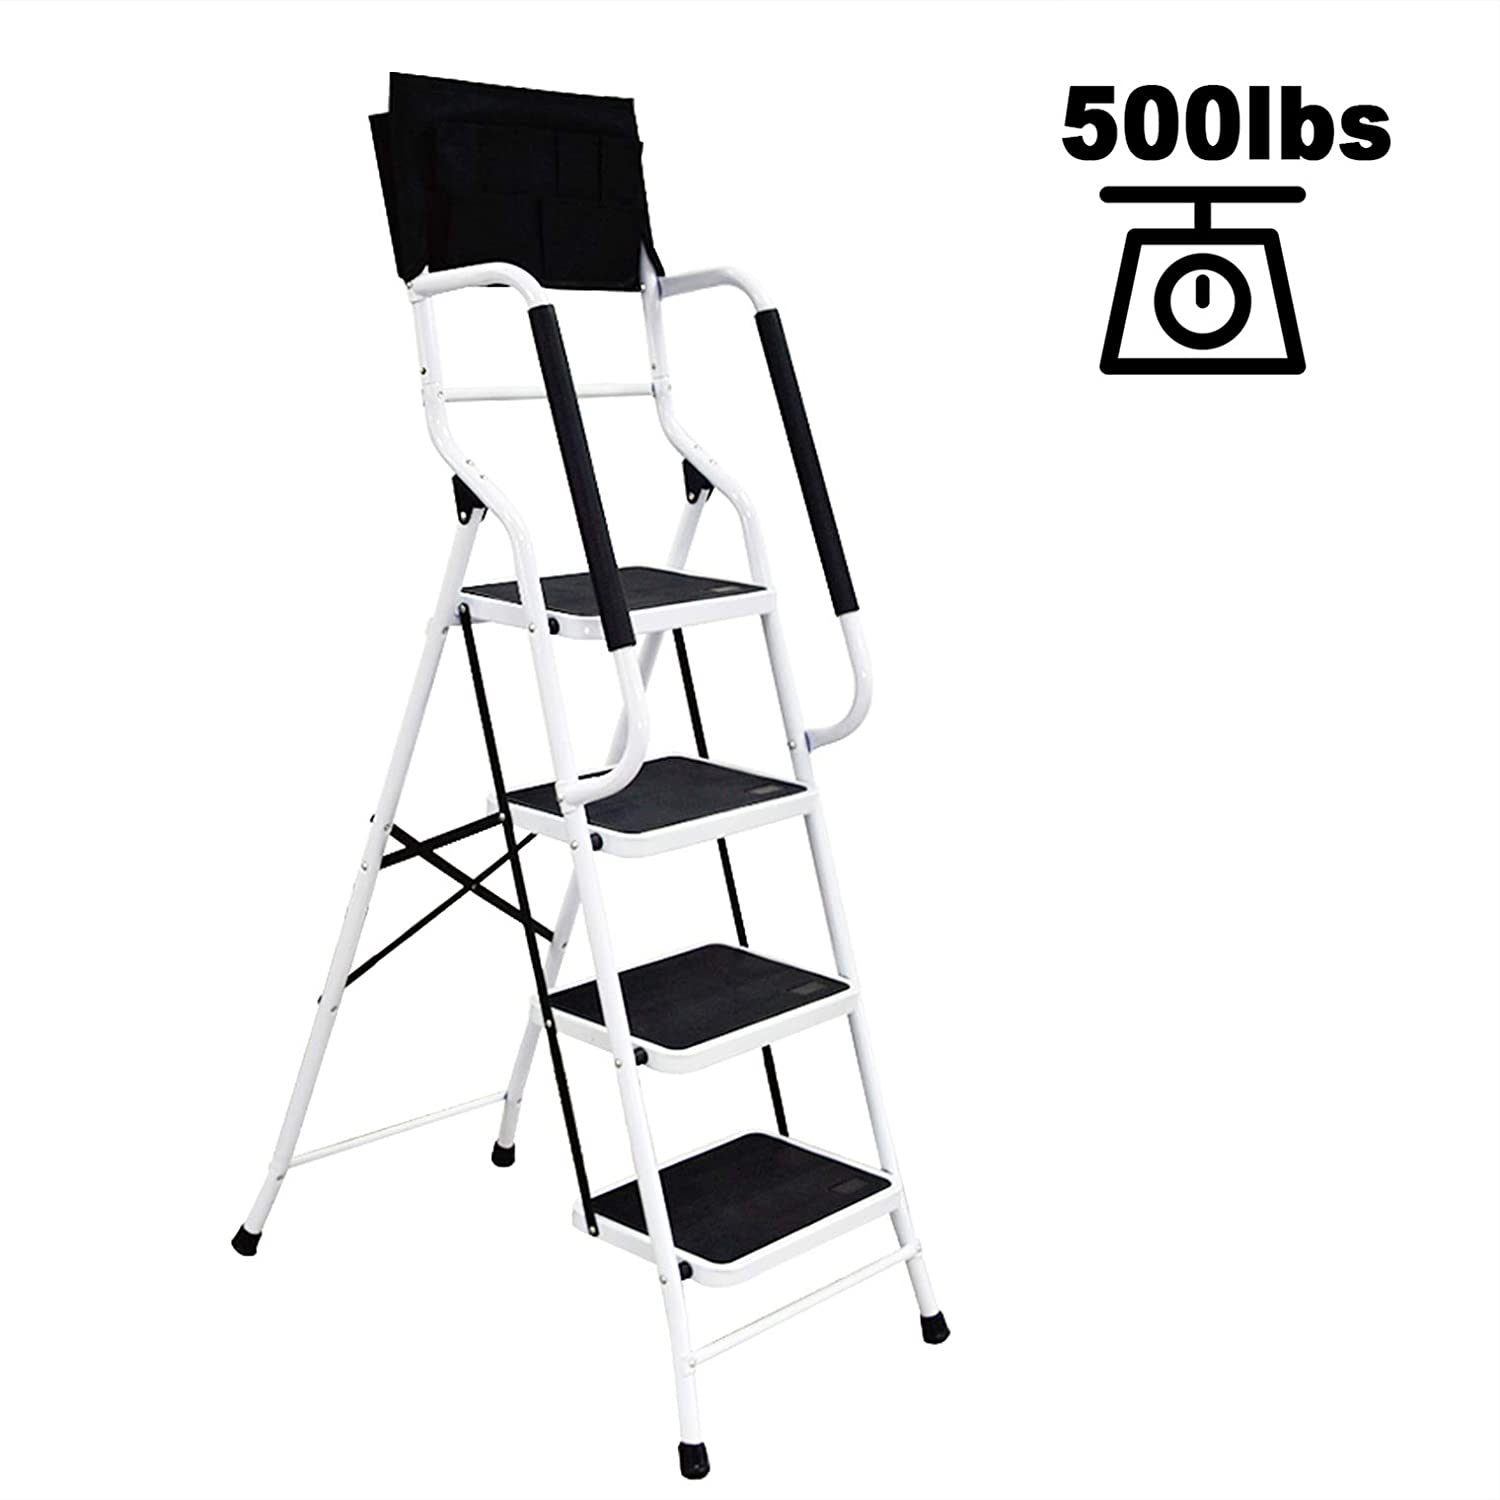 charaHOME 4 Step Ladder Step Stool Folding Portable Ladder Steel Frame with Safety Side Handrails Non-Slip Wide Pedal Kitchen and Home Stepladder with Attachable Tool Bag 500 lb Capacity